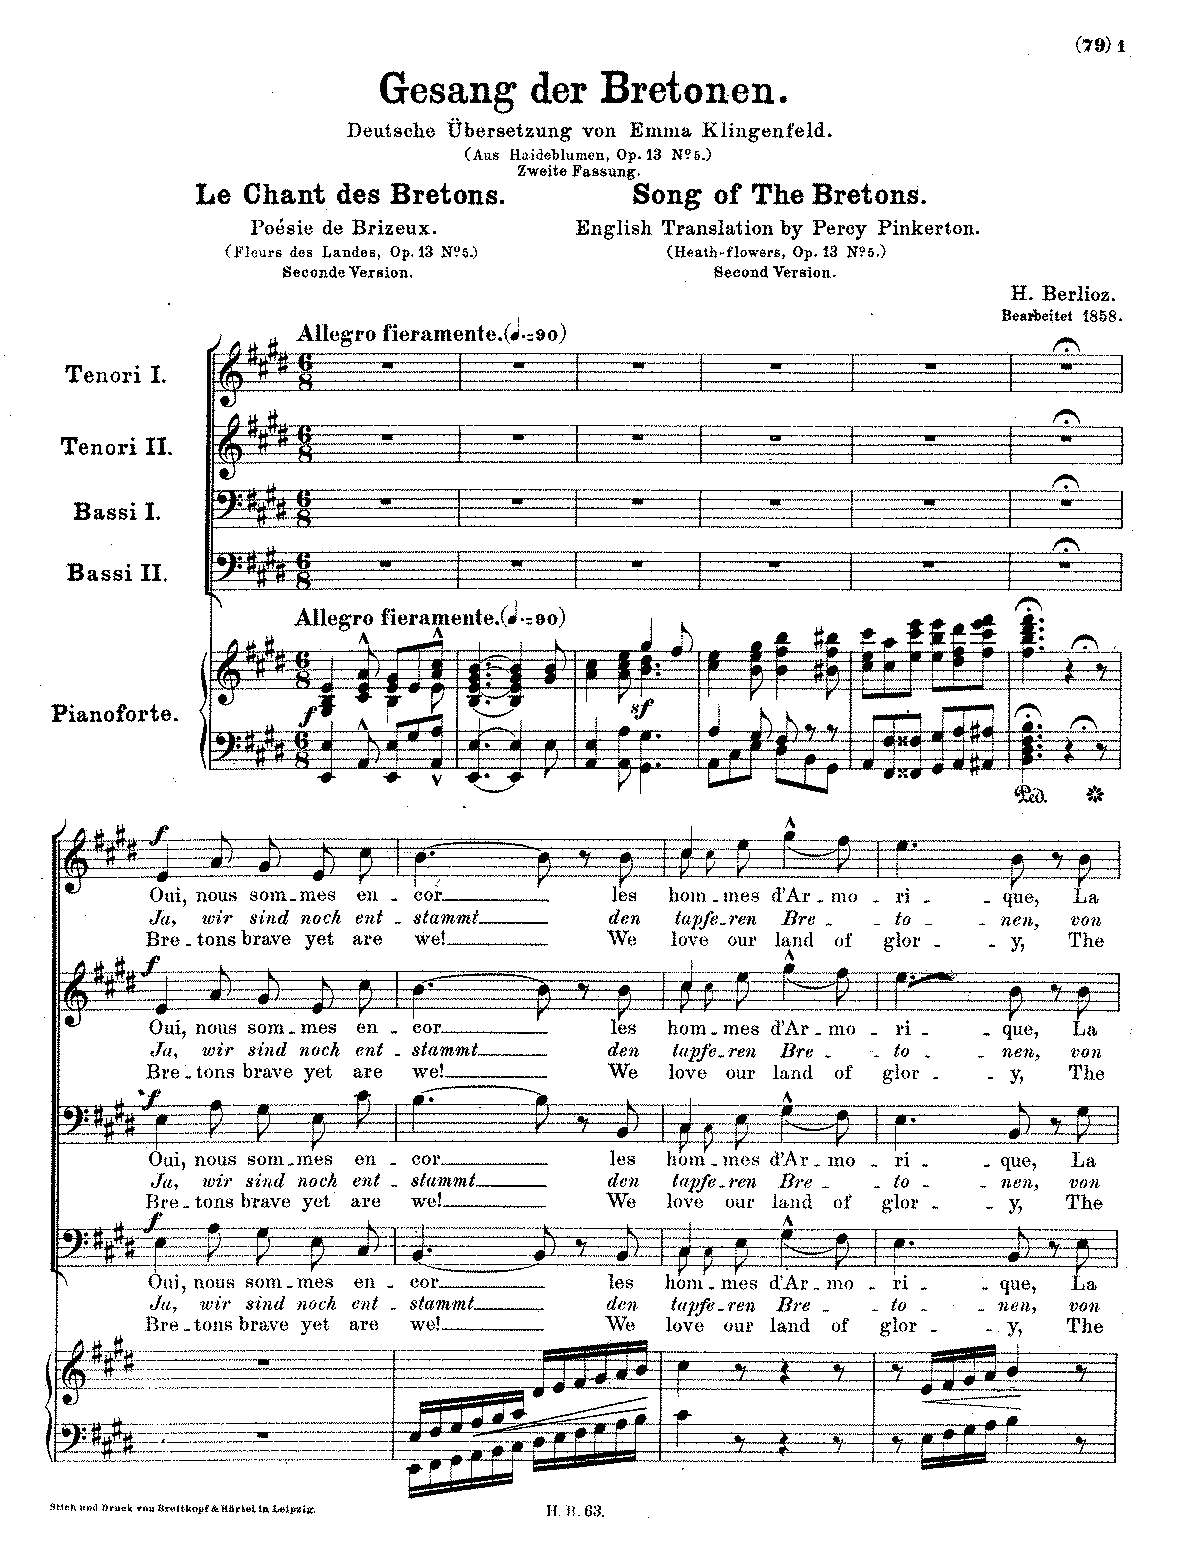 PMLP115007-Berlioz - Fleurs des landes, Op. 13 - No. 5 - Le chant des Bretons - Second Version (vocal score).pdf